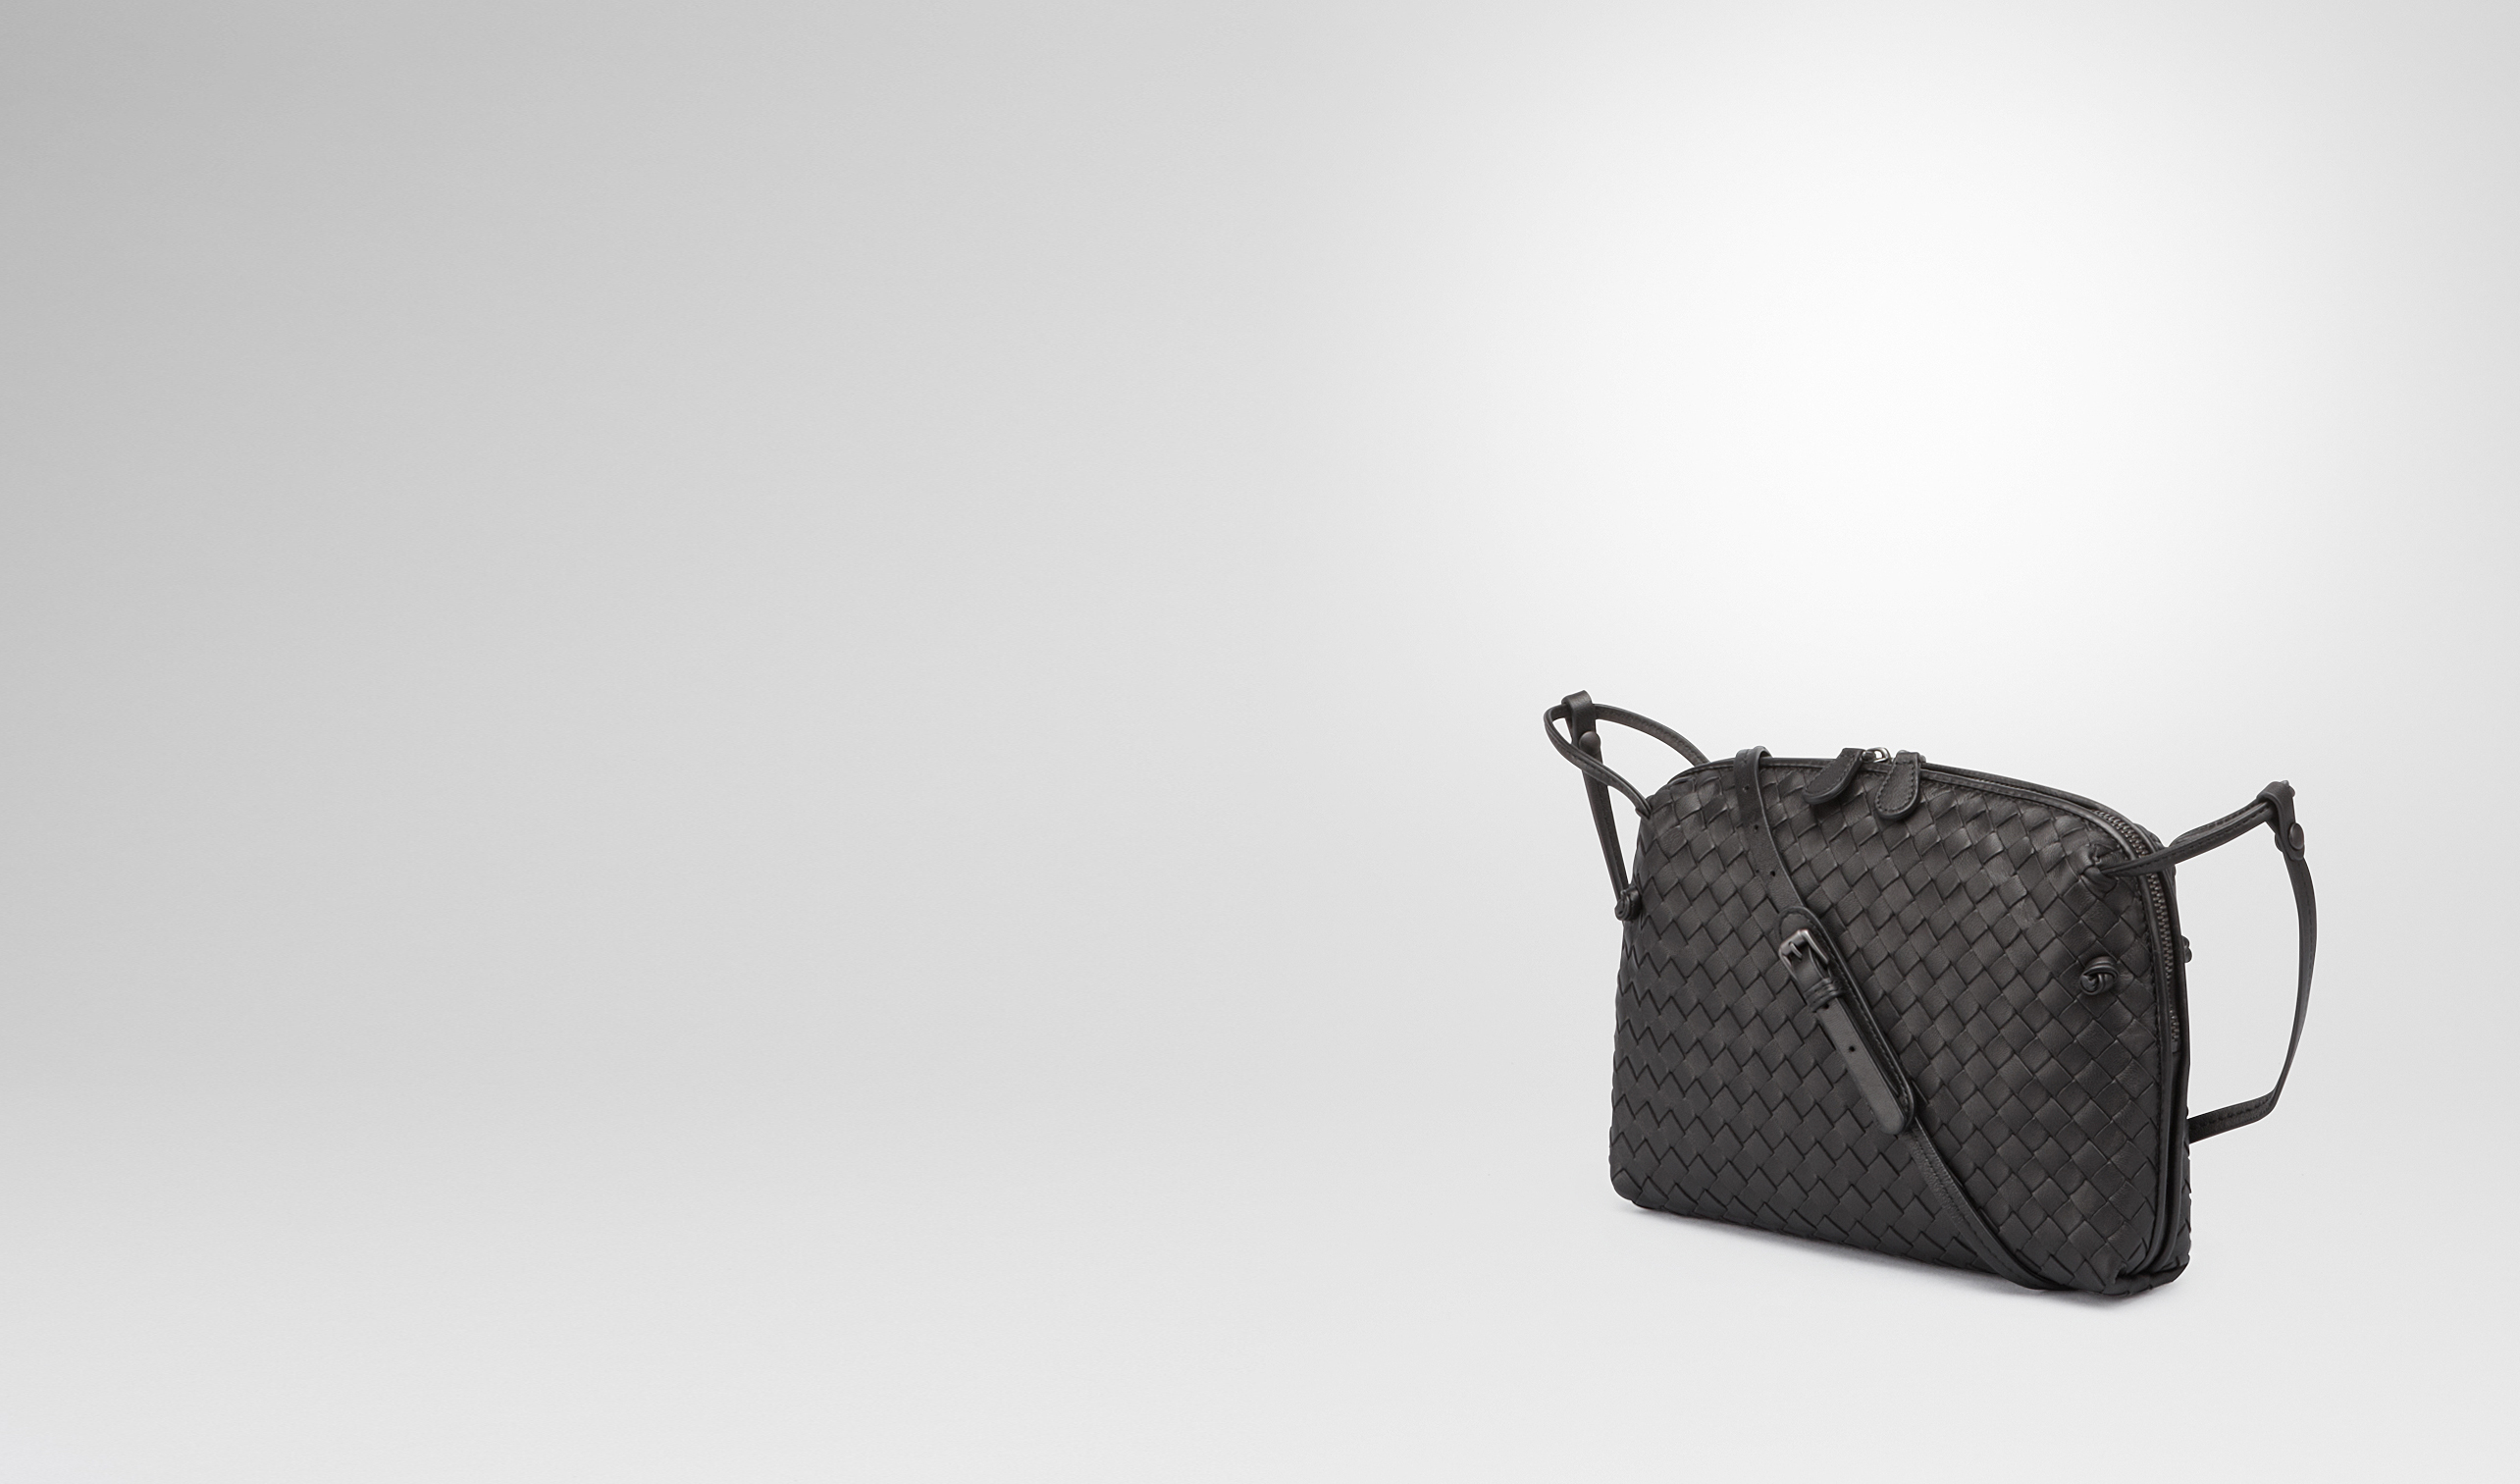 BOTTEGA VENETA Crossbody bag D MESSENGER BAG IN NERO INTRECCIATO NAPPA pl